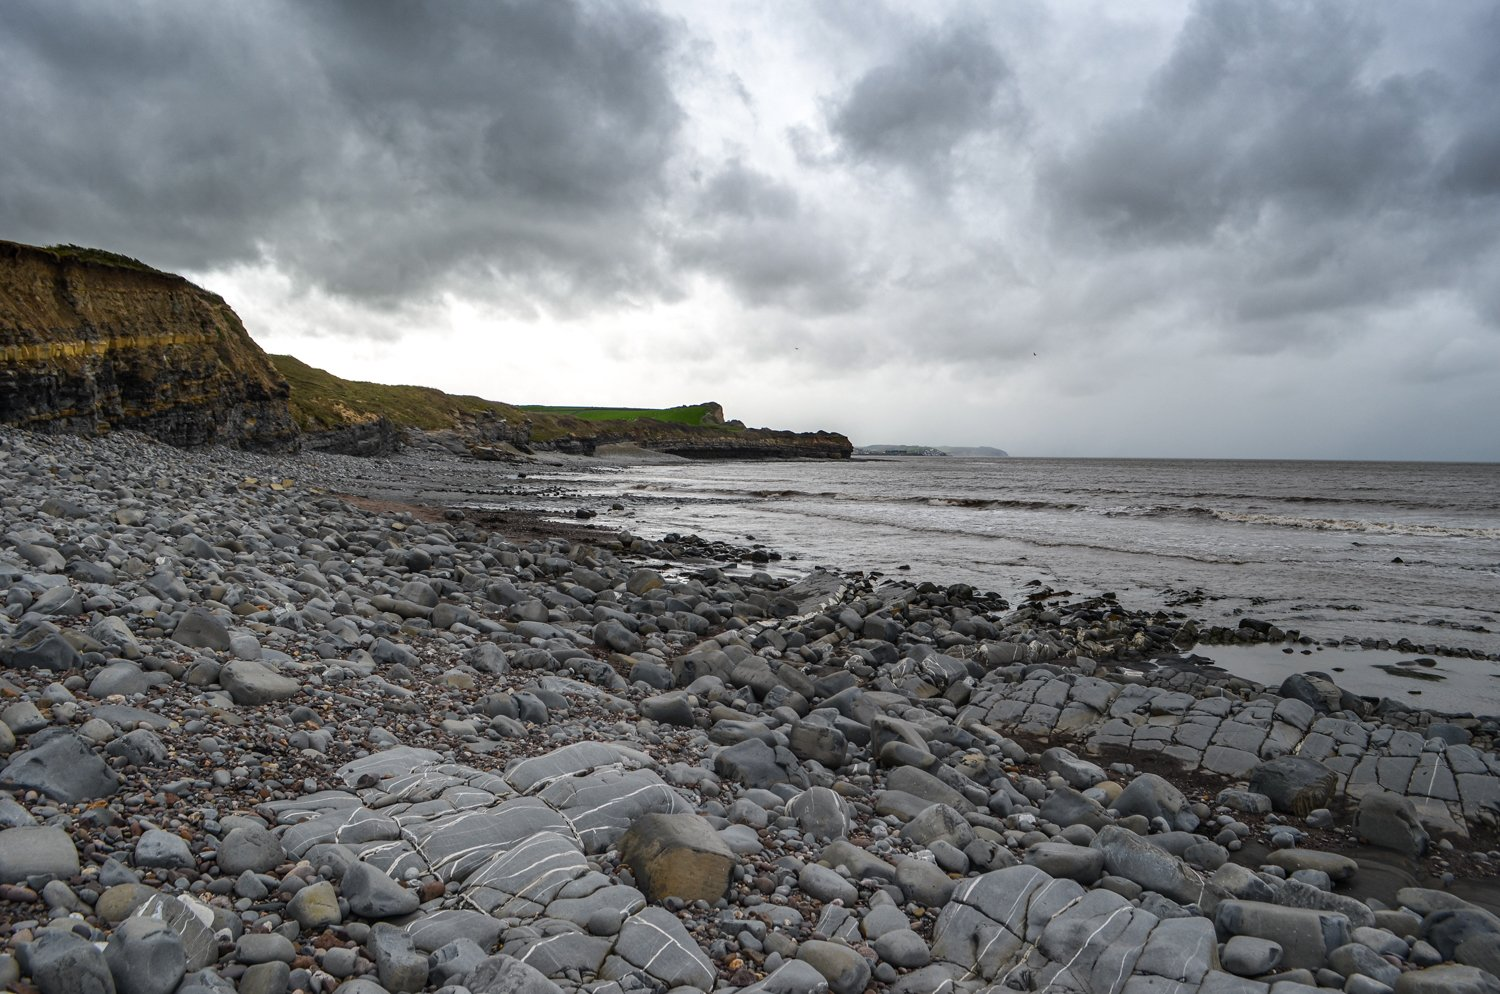 kilve beach in England, clouds and rocks